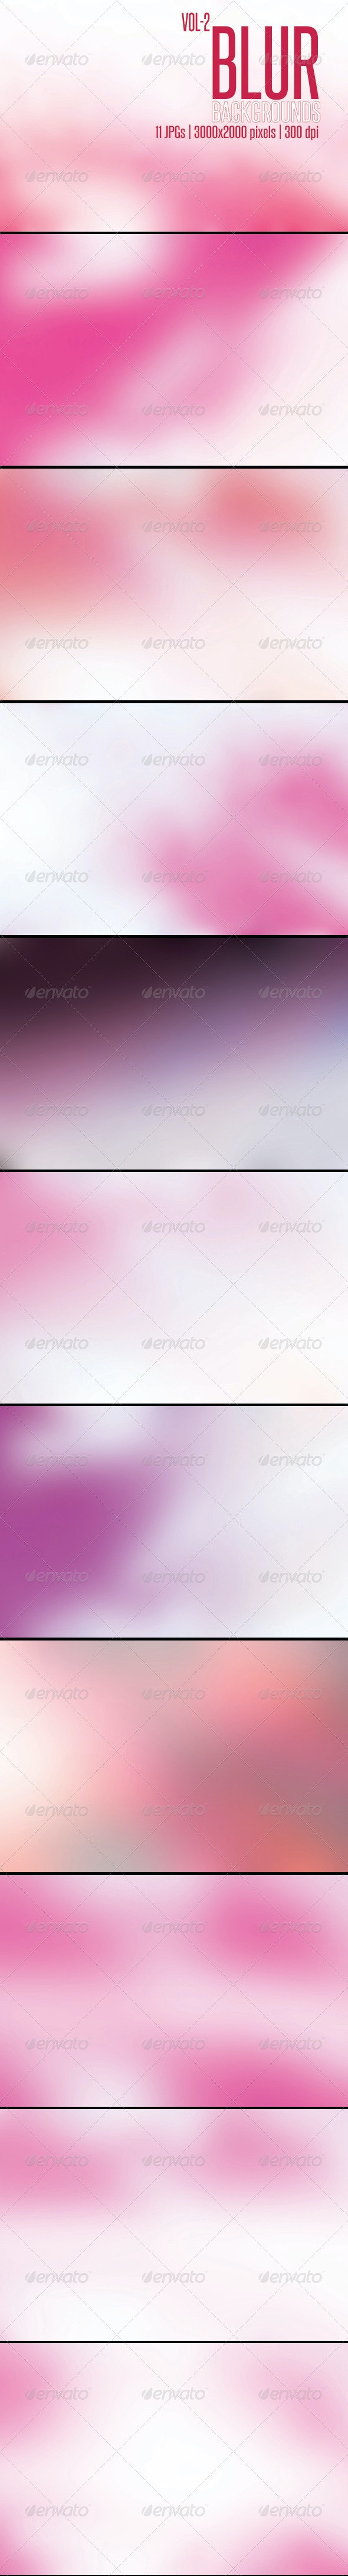 11 Blur Backgrounds Vol-2 - Abstract Backgrounds